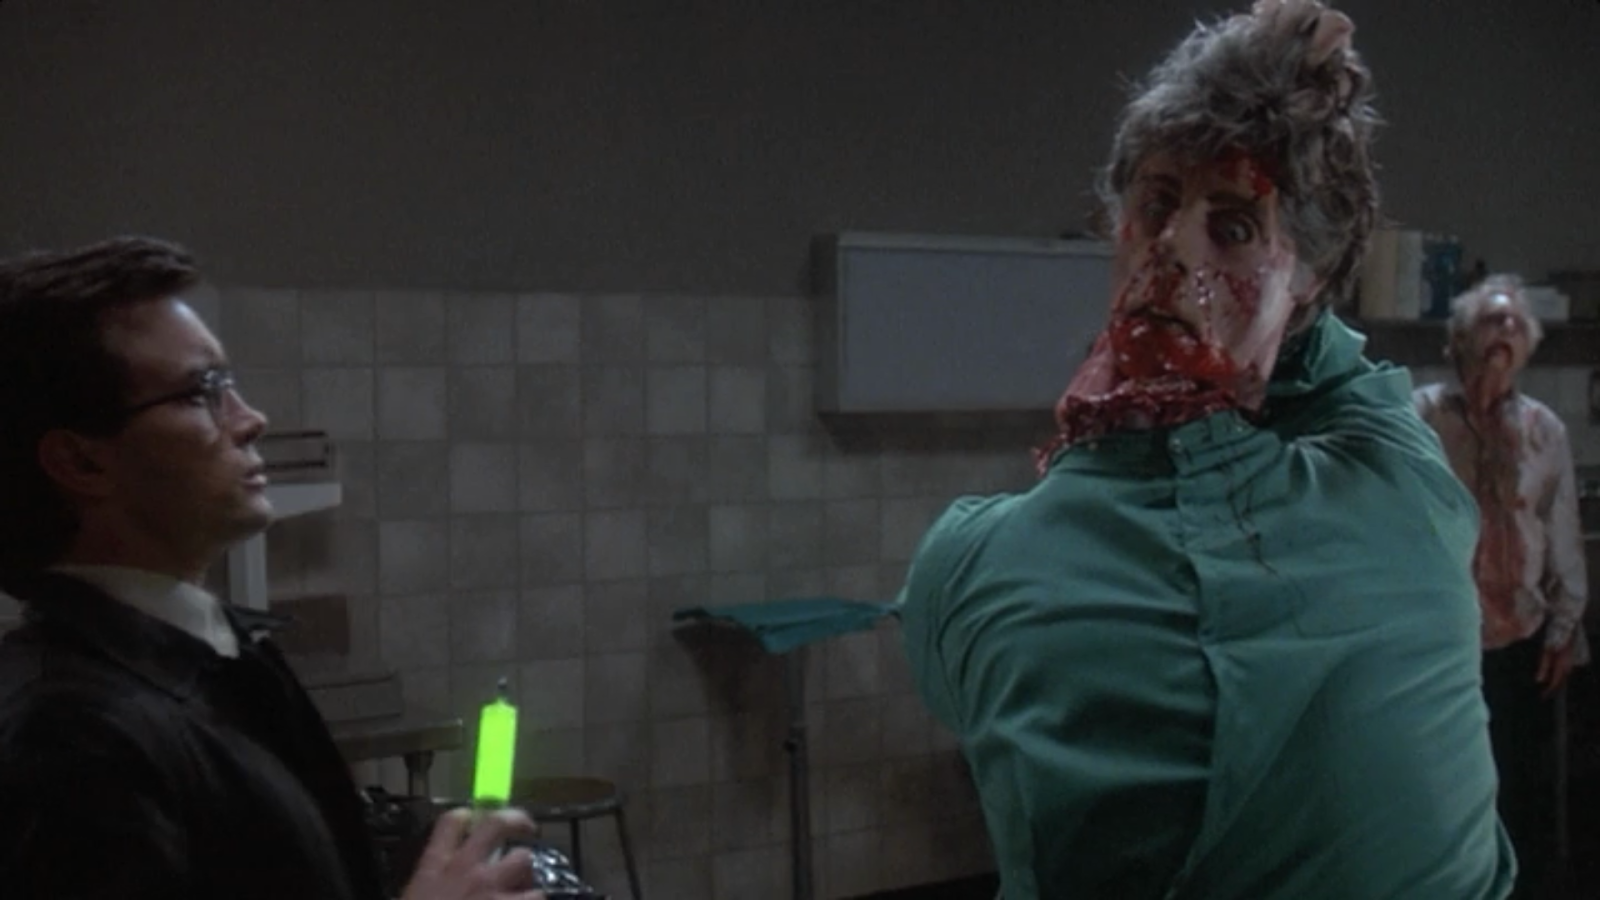 With Re-Animator, Stuart Gordon pushed horror and comedy over the line ...